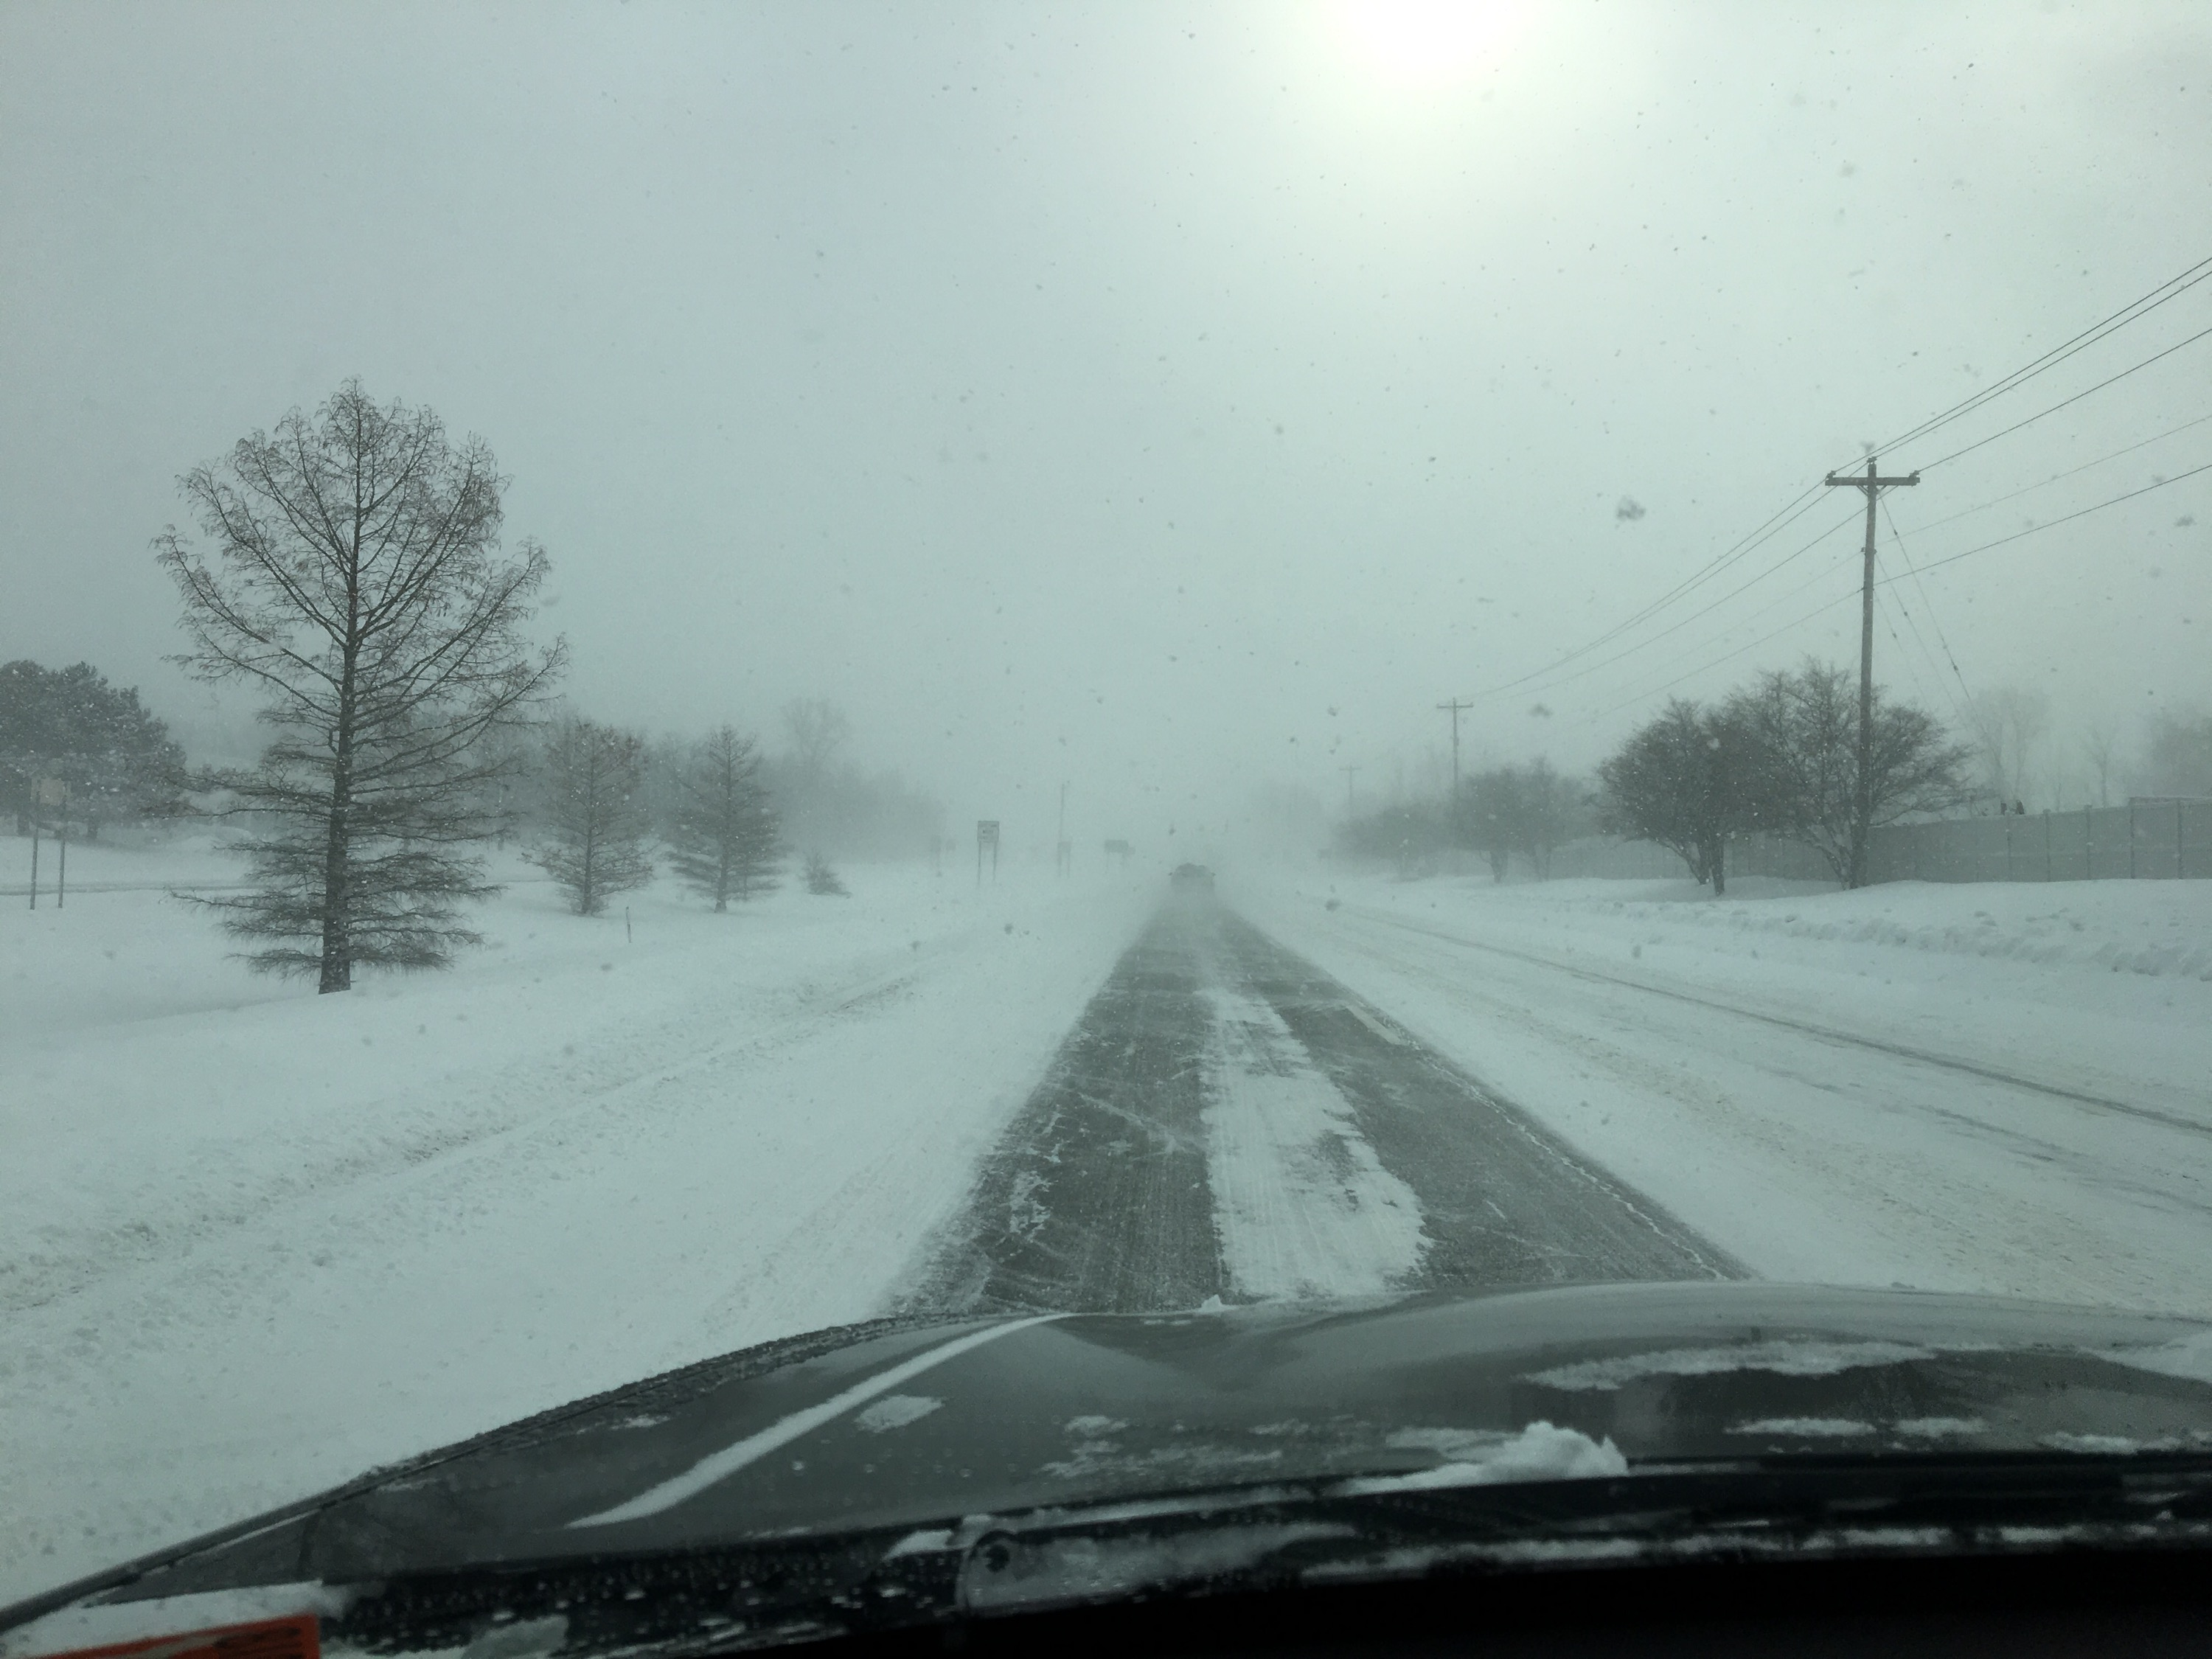 January 28 - 31, 2019: Days of Snow, Low Visibility, and Extreme Cold